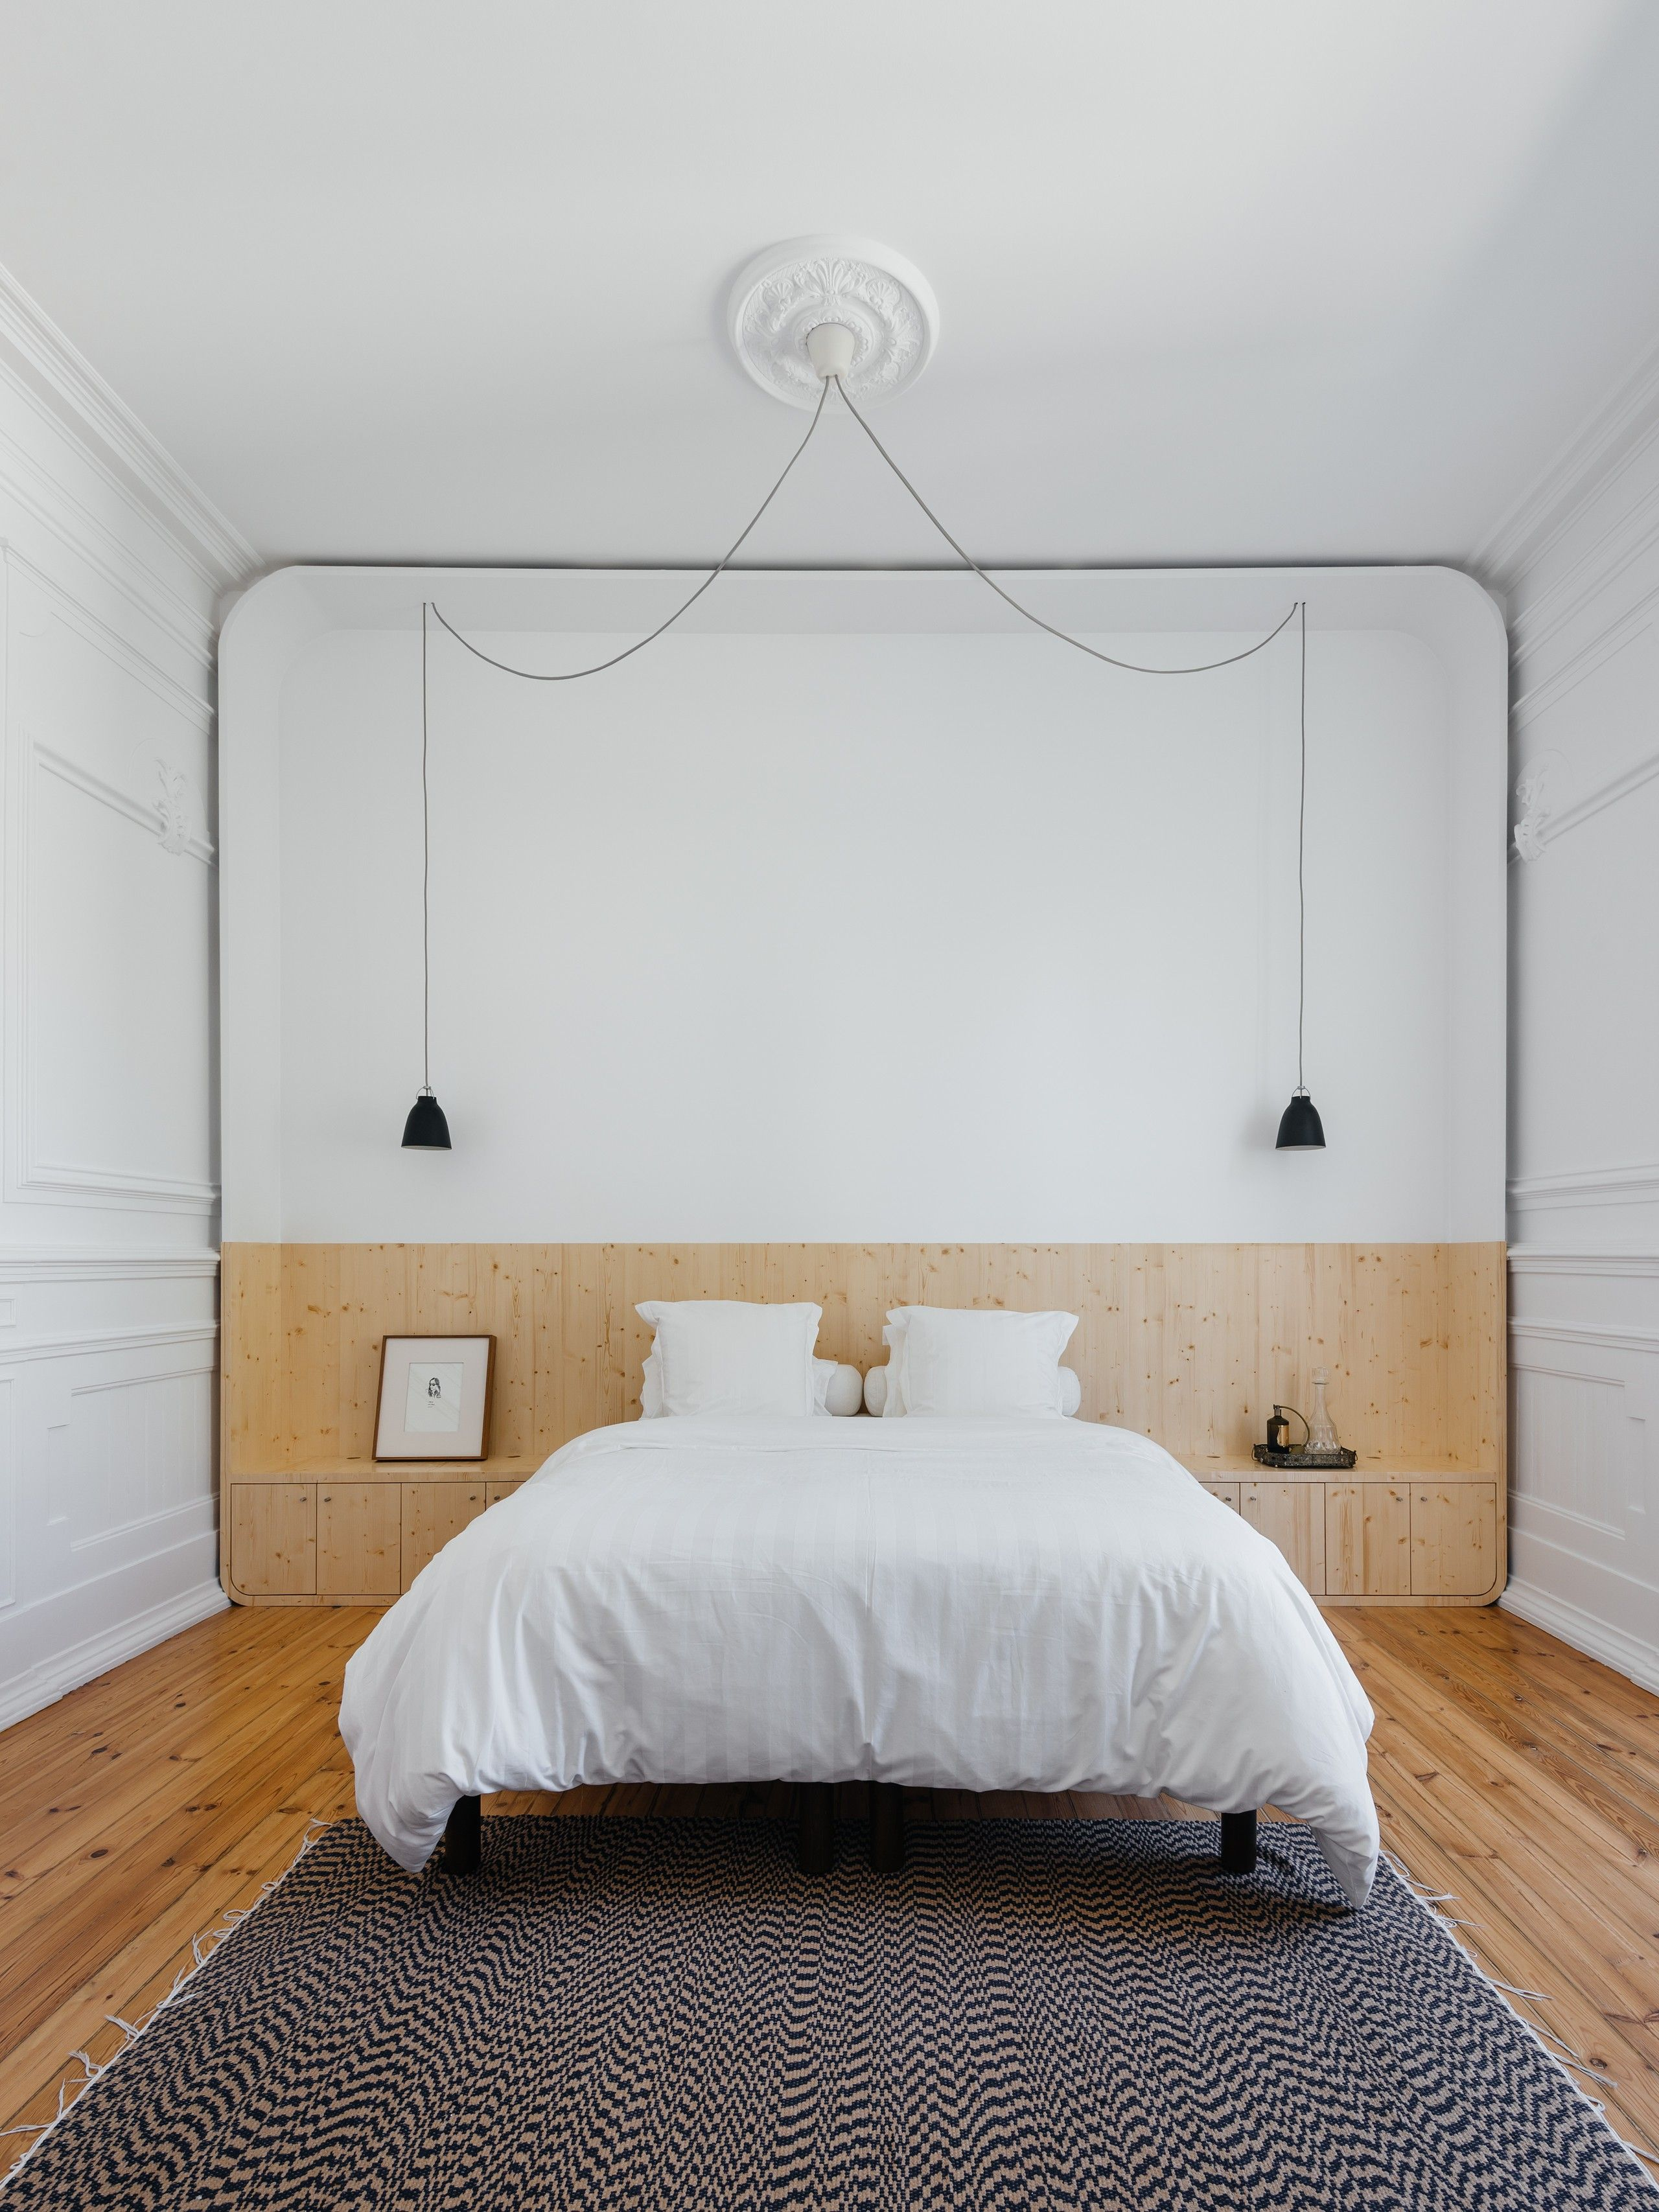 Room Archello room Pinterest